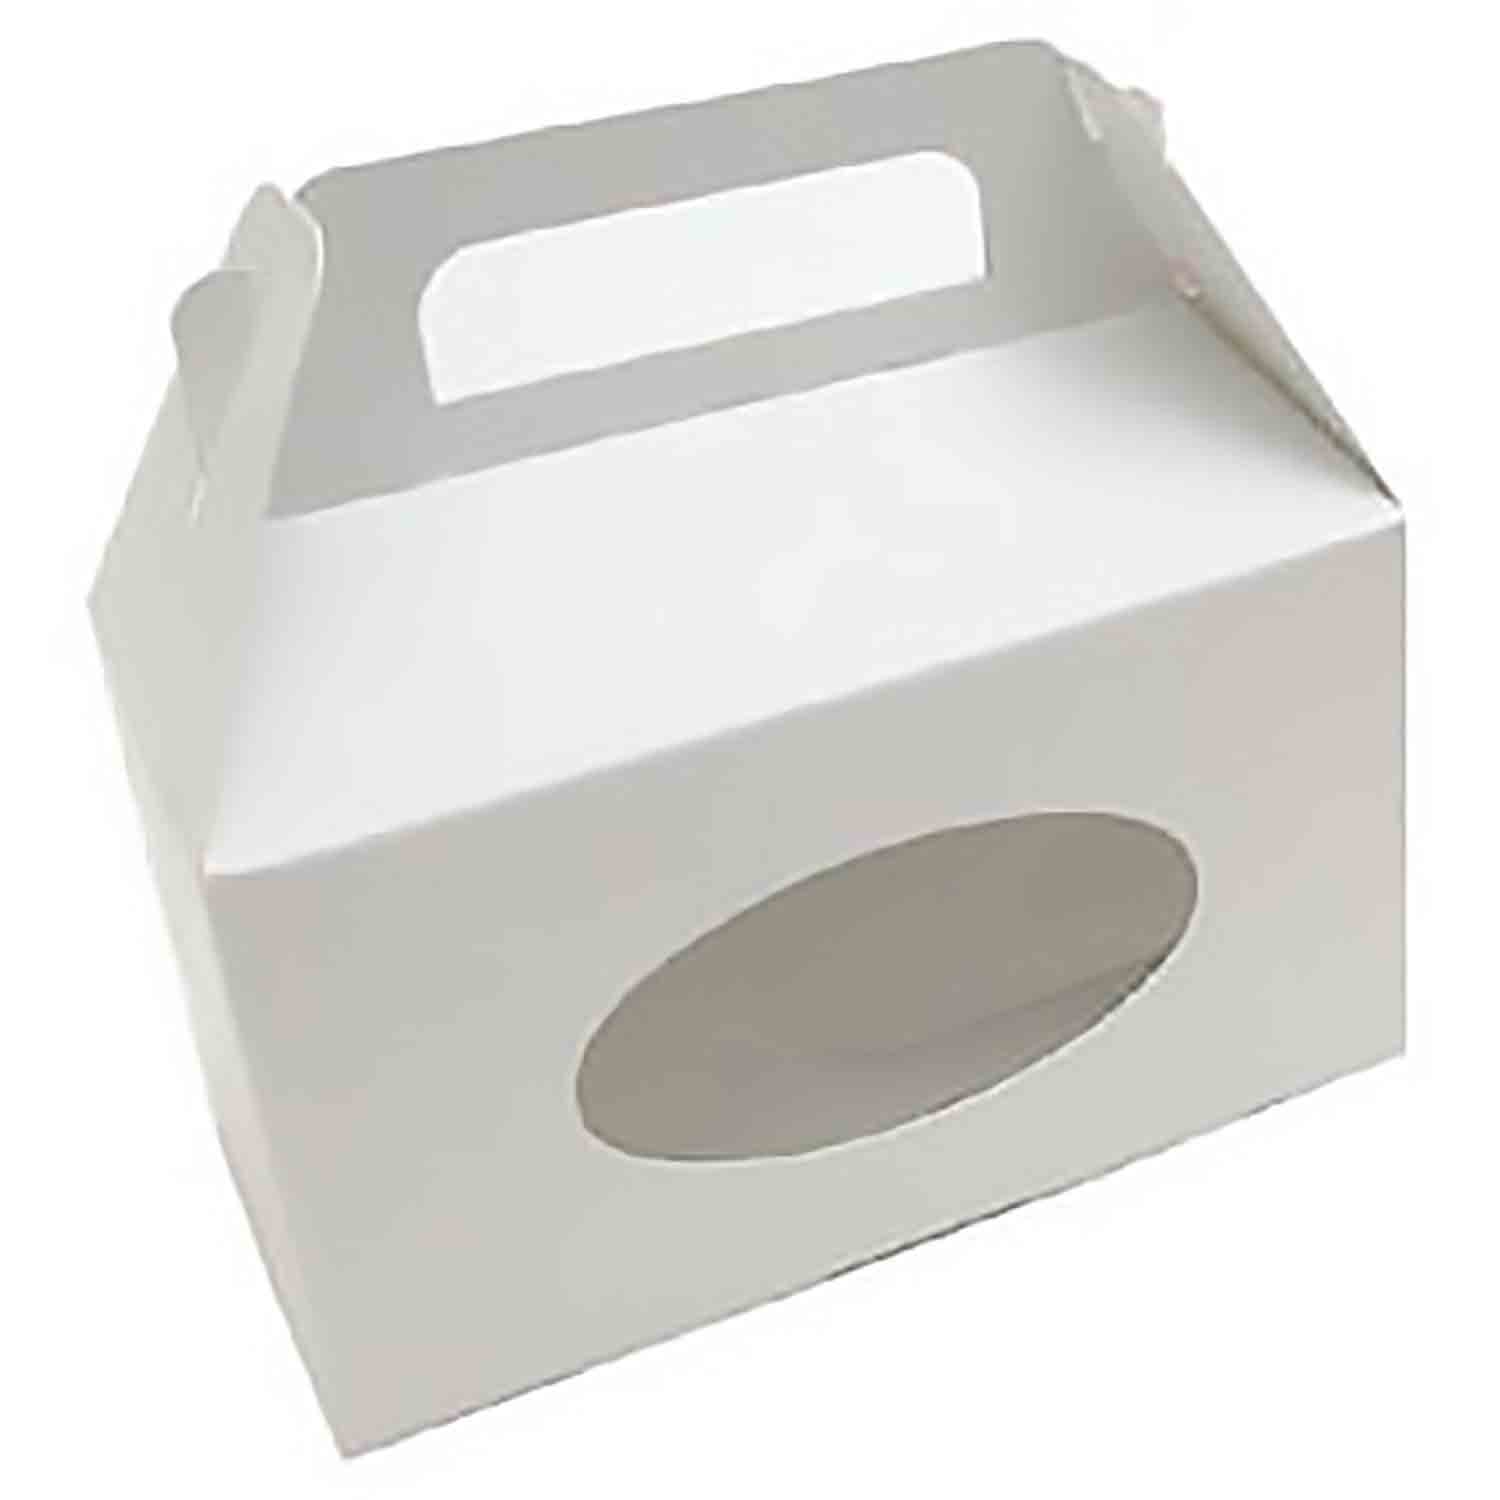 1 1/2 lb. White Tote Candy Box with Window